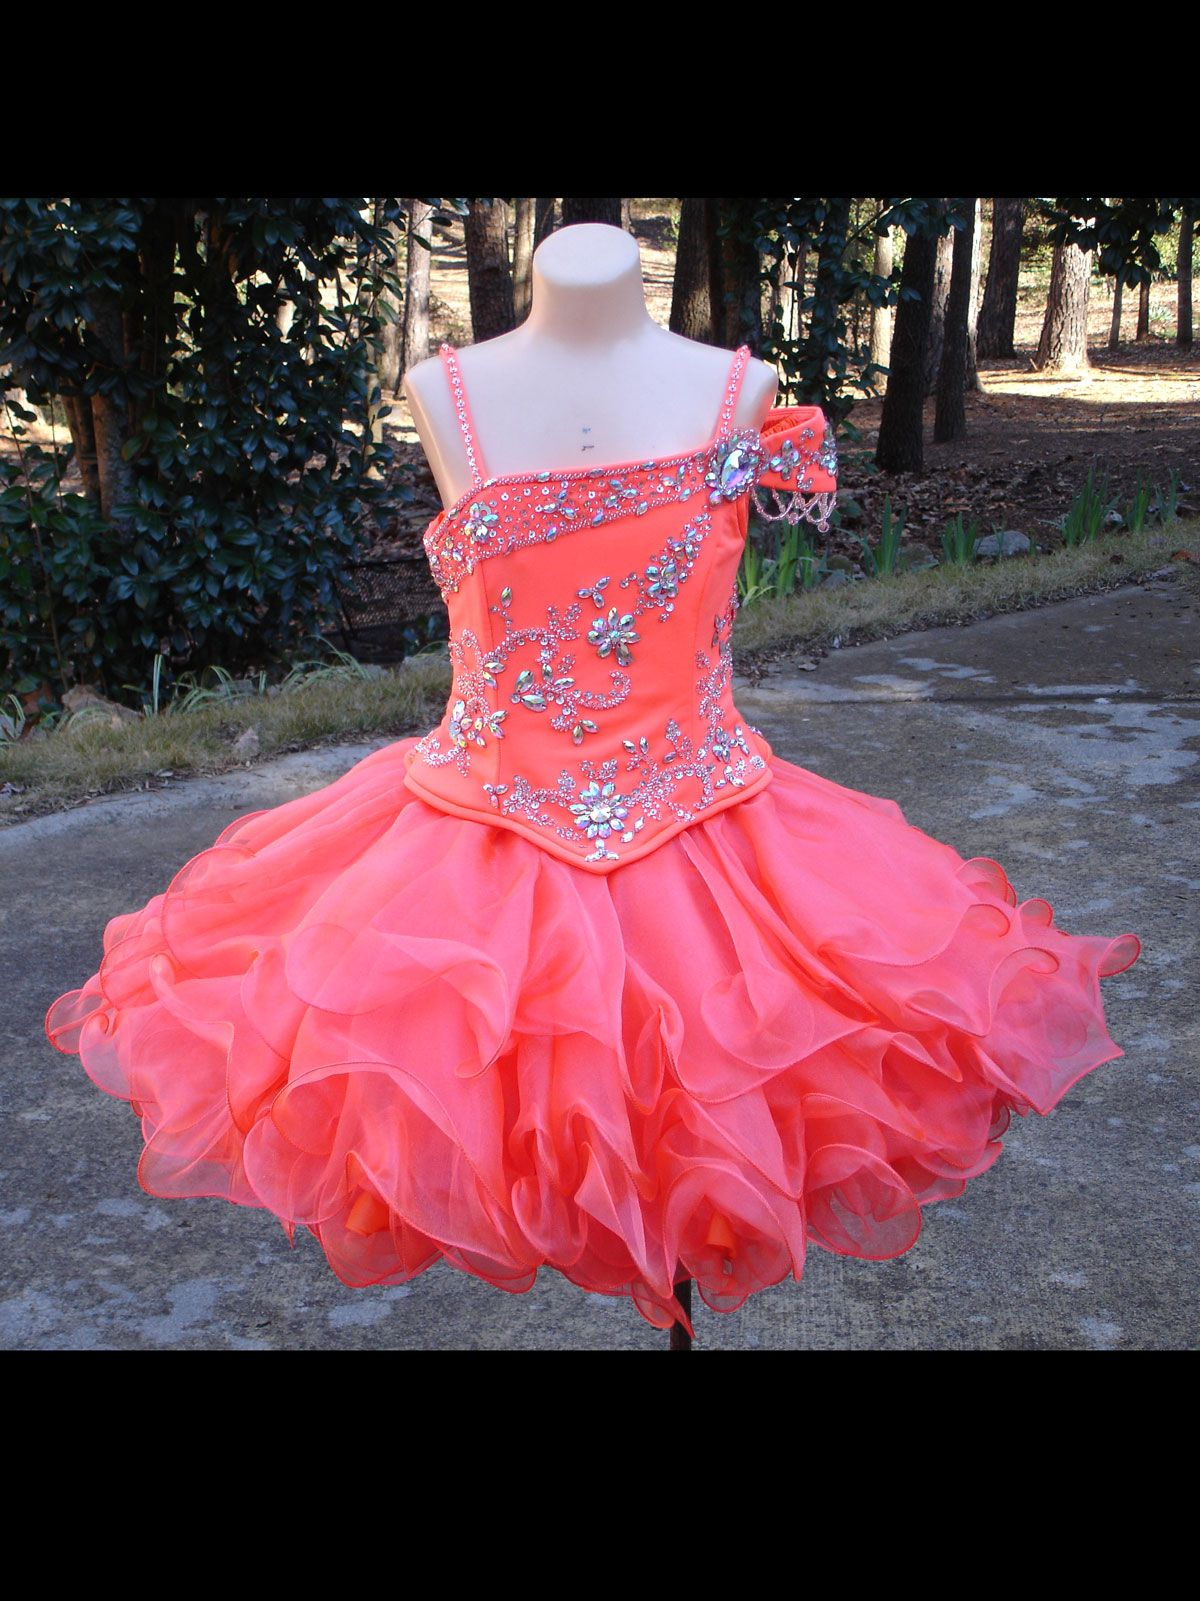 0979db4fe Size 5 Tangerine In StockStunning Unique Fashion Pageant Dress ...